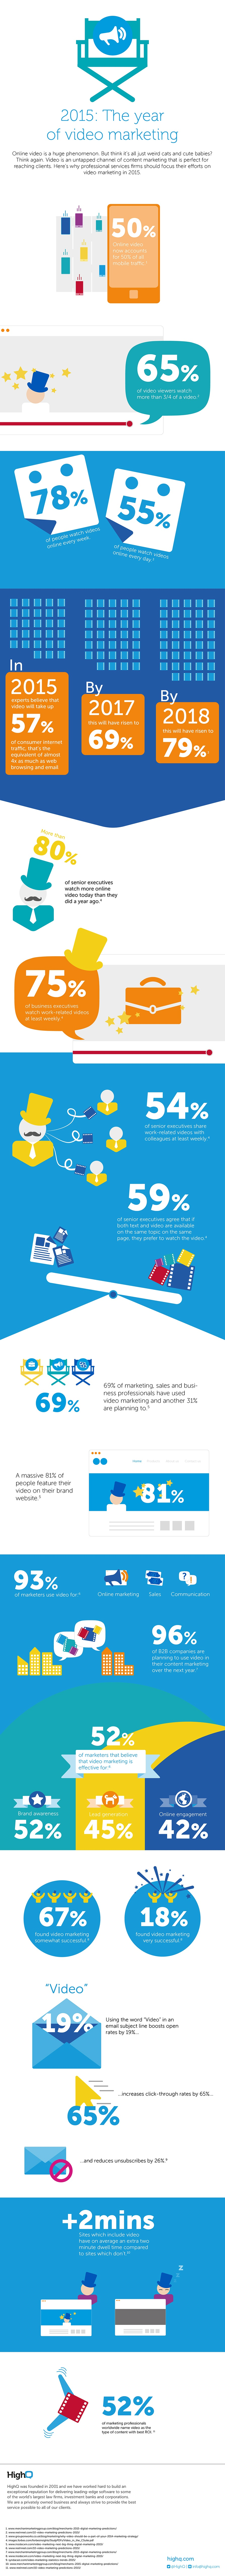 video-infographic-optimizing-service-area-pages